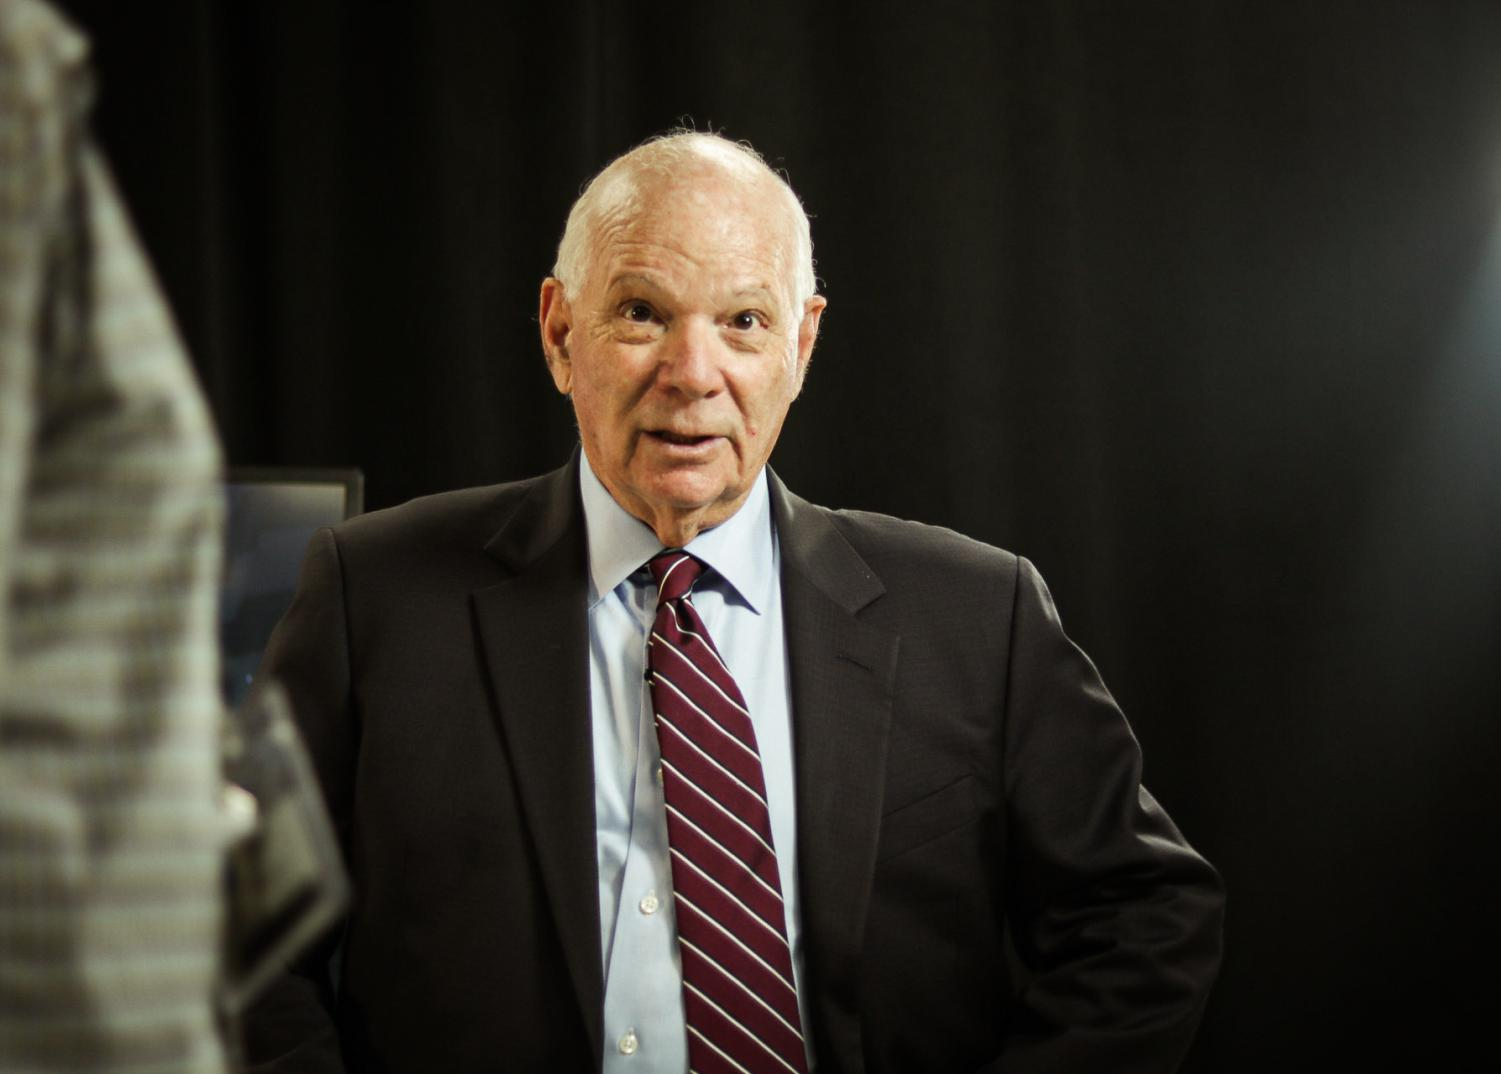 Sen. Ben Cardin (D-Md.) prepares to respond to a student's question.